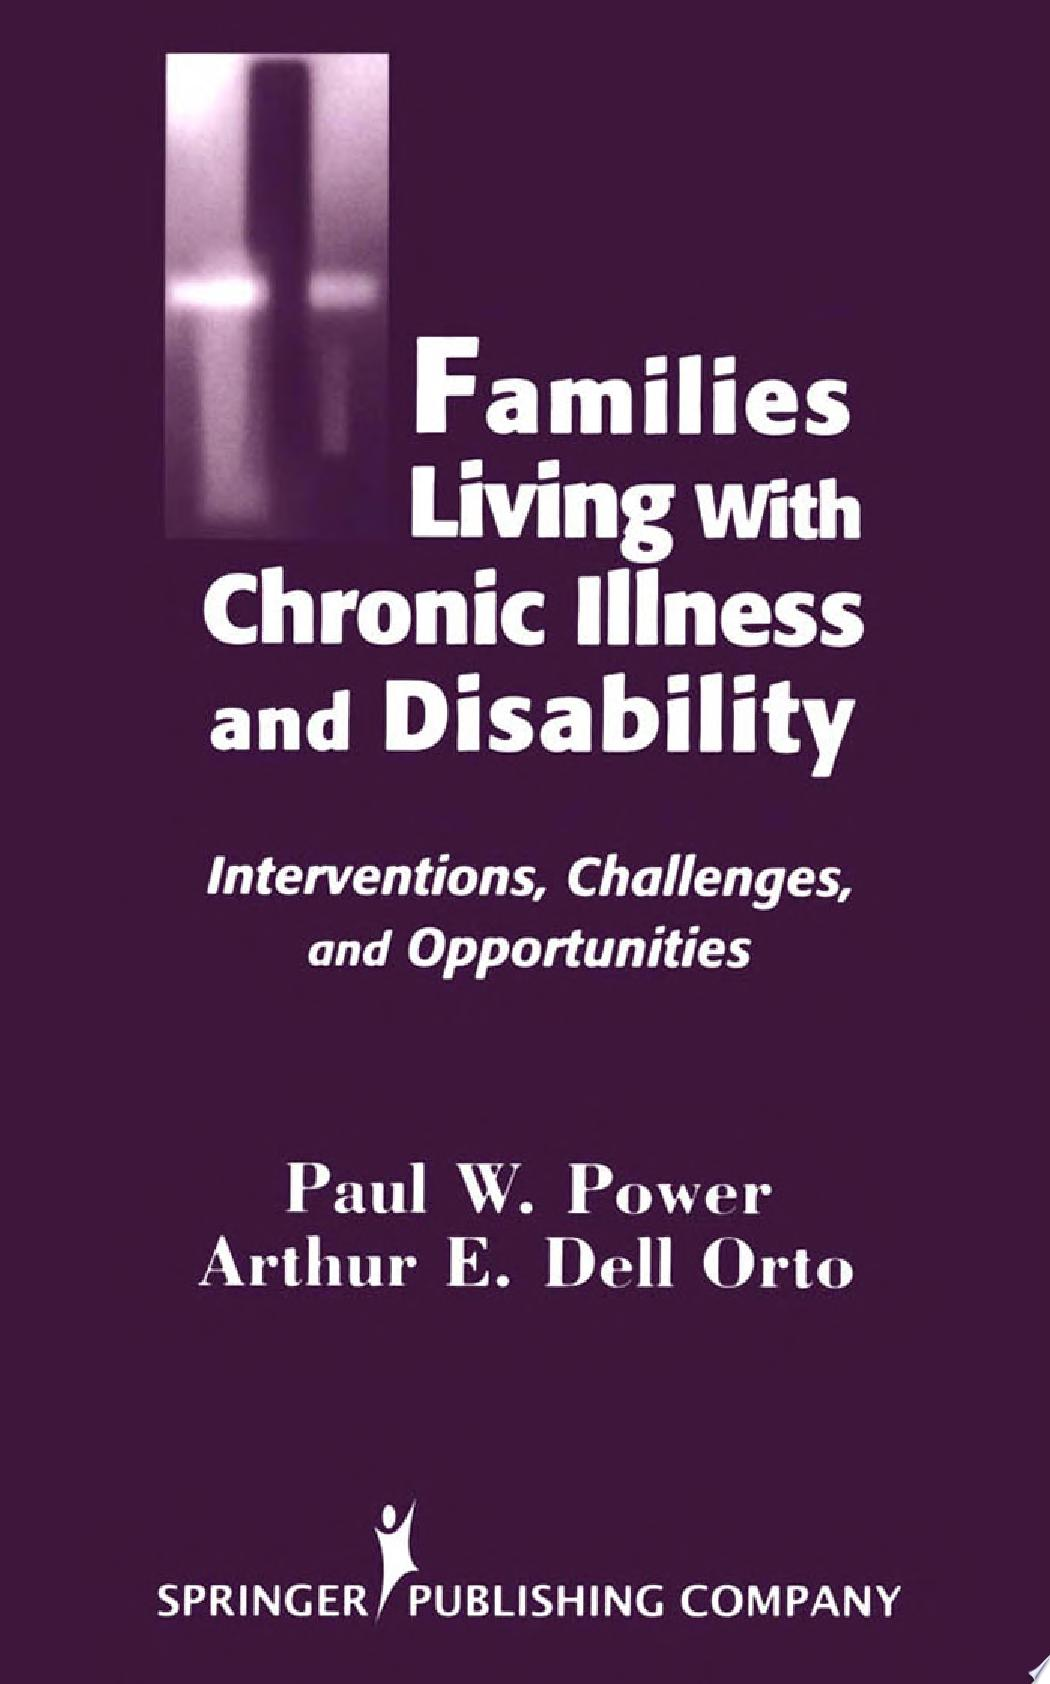 Families Living with Chronic Illness and Disability